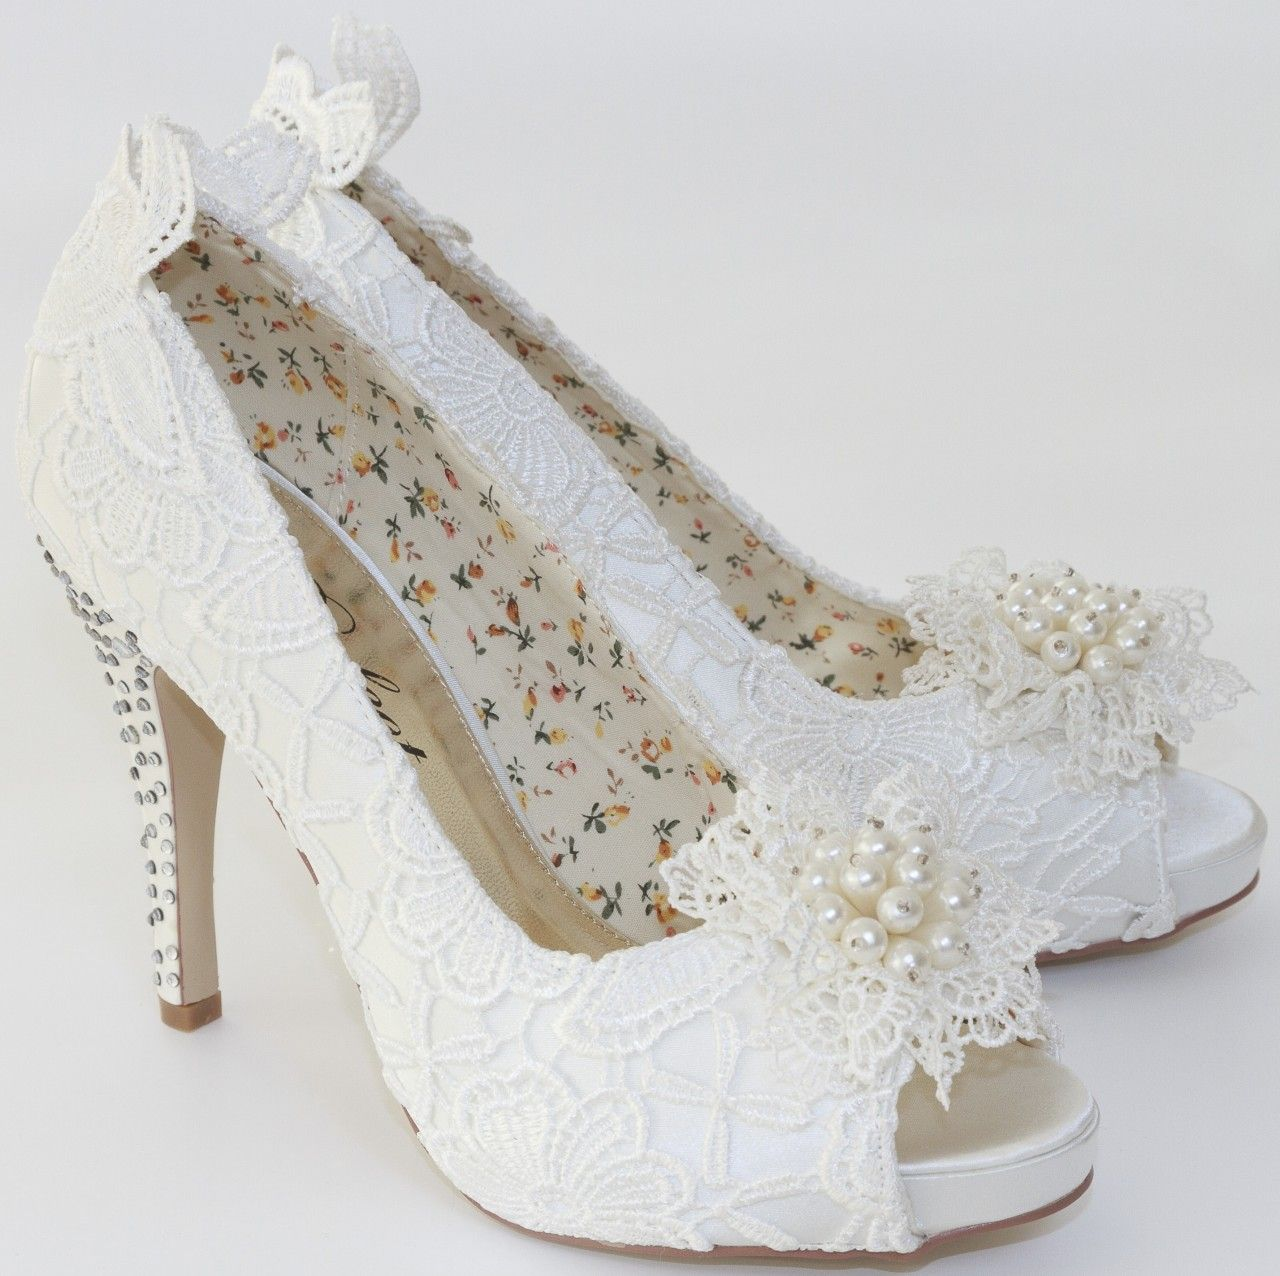 Etonnant Flo By Perfect Bridal Shoes Ivory Lace And Pearls At The Wedding Boutique.  FREE UK Delivery Available.